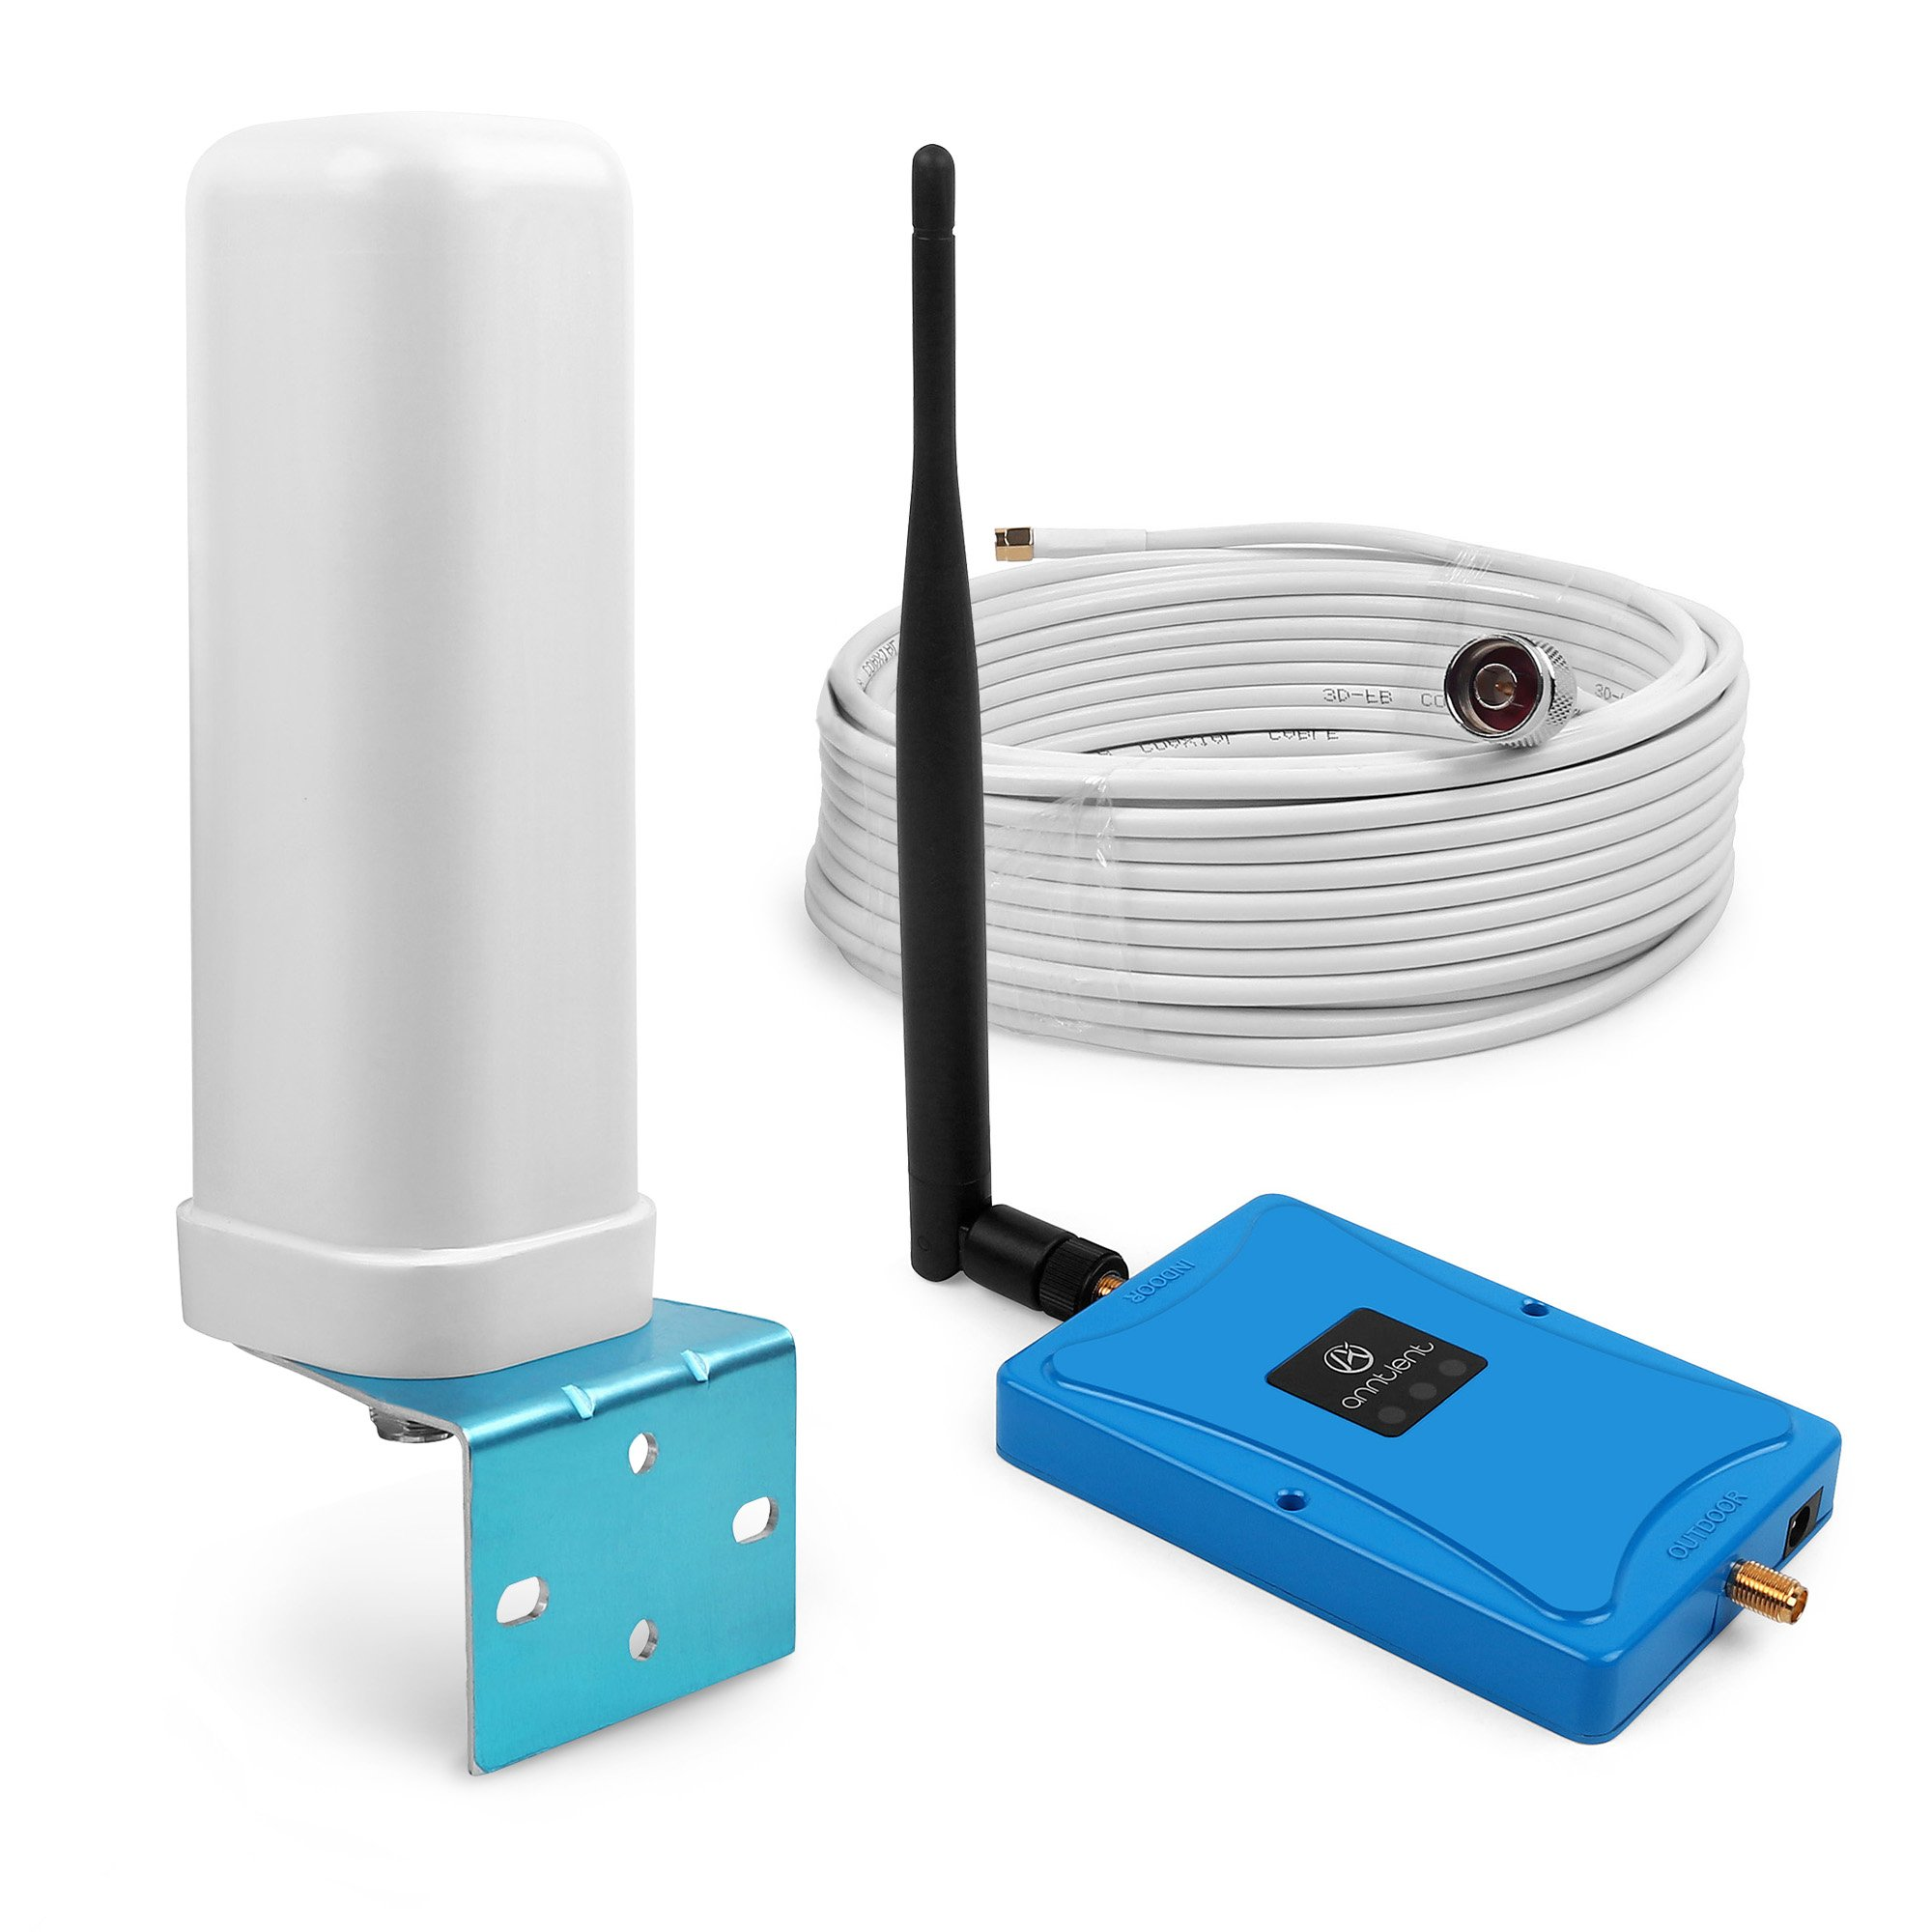 ANNTLENT 700MH AT&T 4G LTE Mobile Signal Booster Cellular Repeater Amplifier with Yagi Antenna